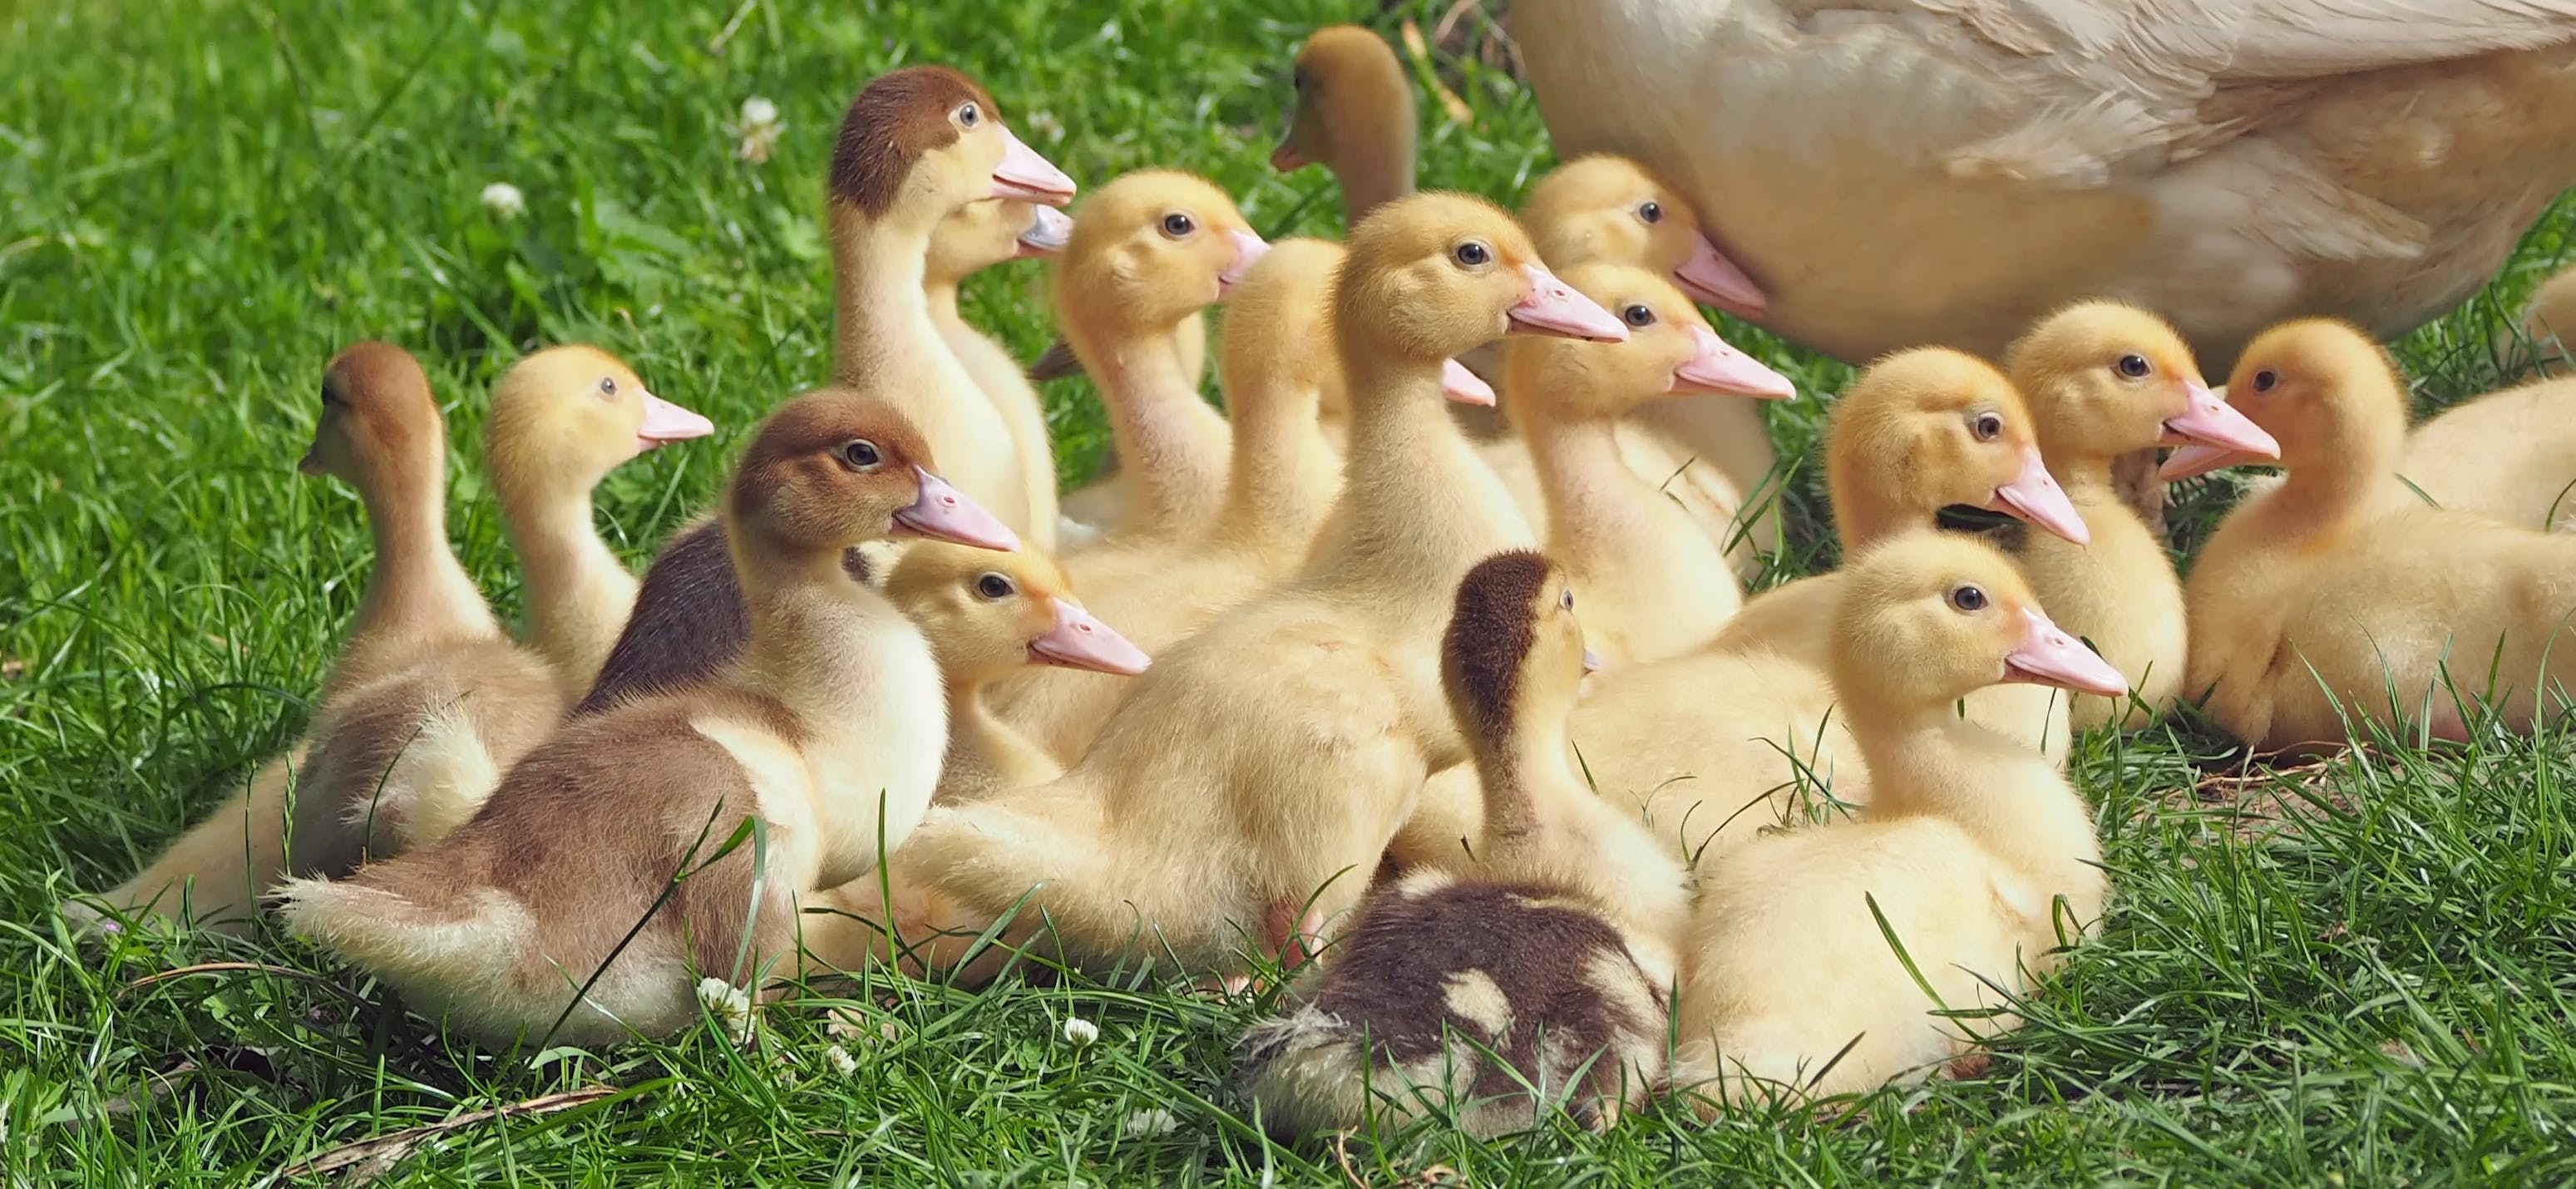 Photography of Ducklings at Green Grass Field during Daytime